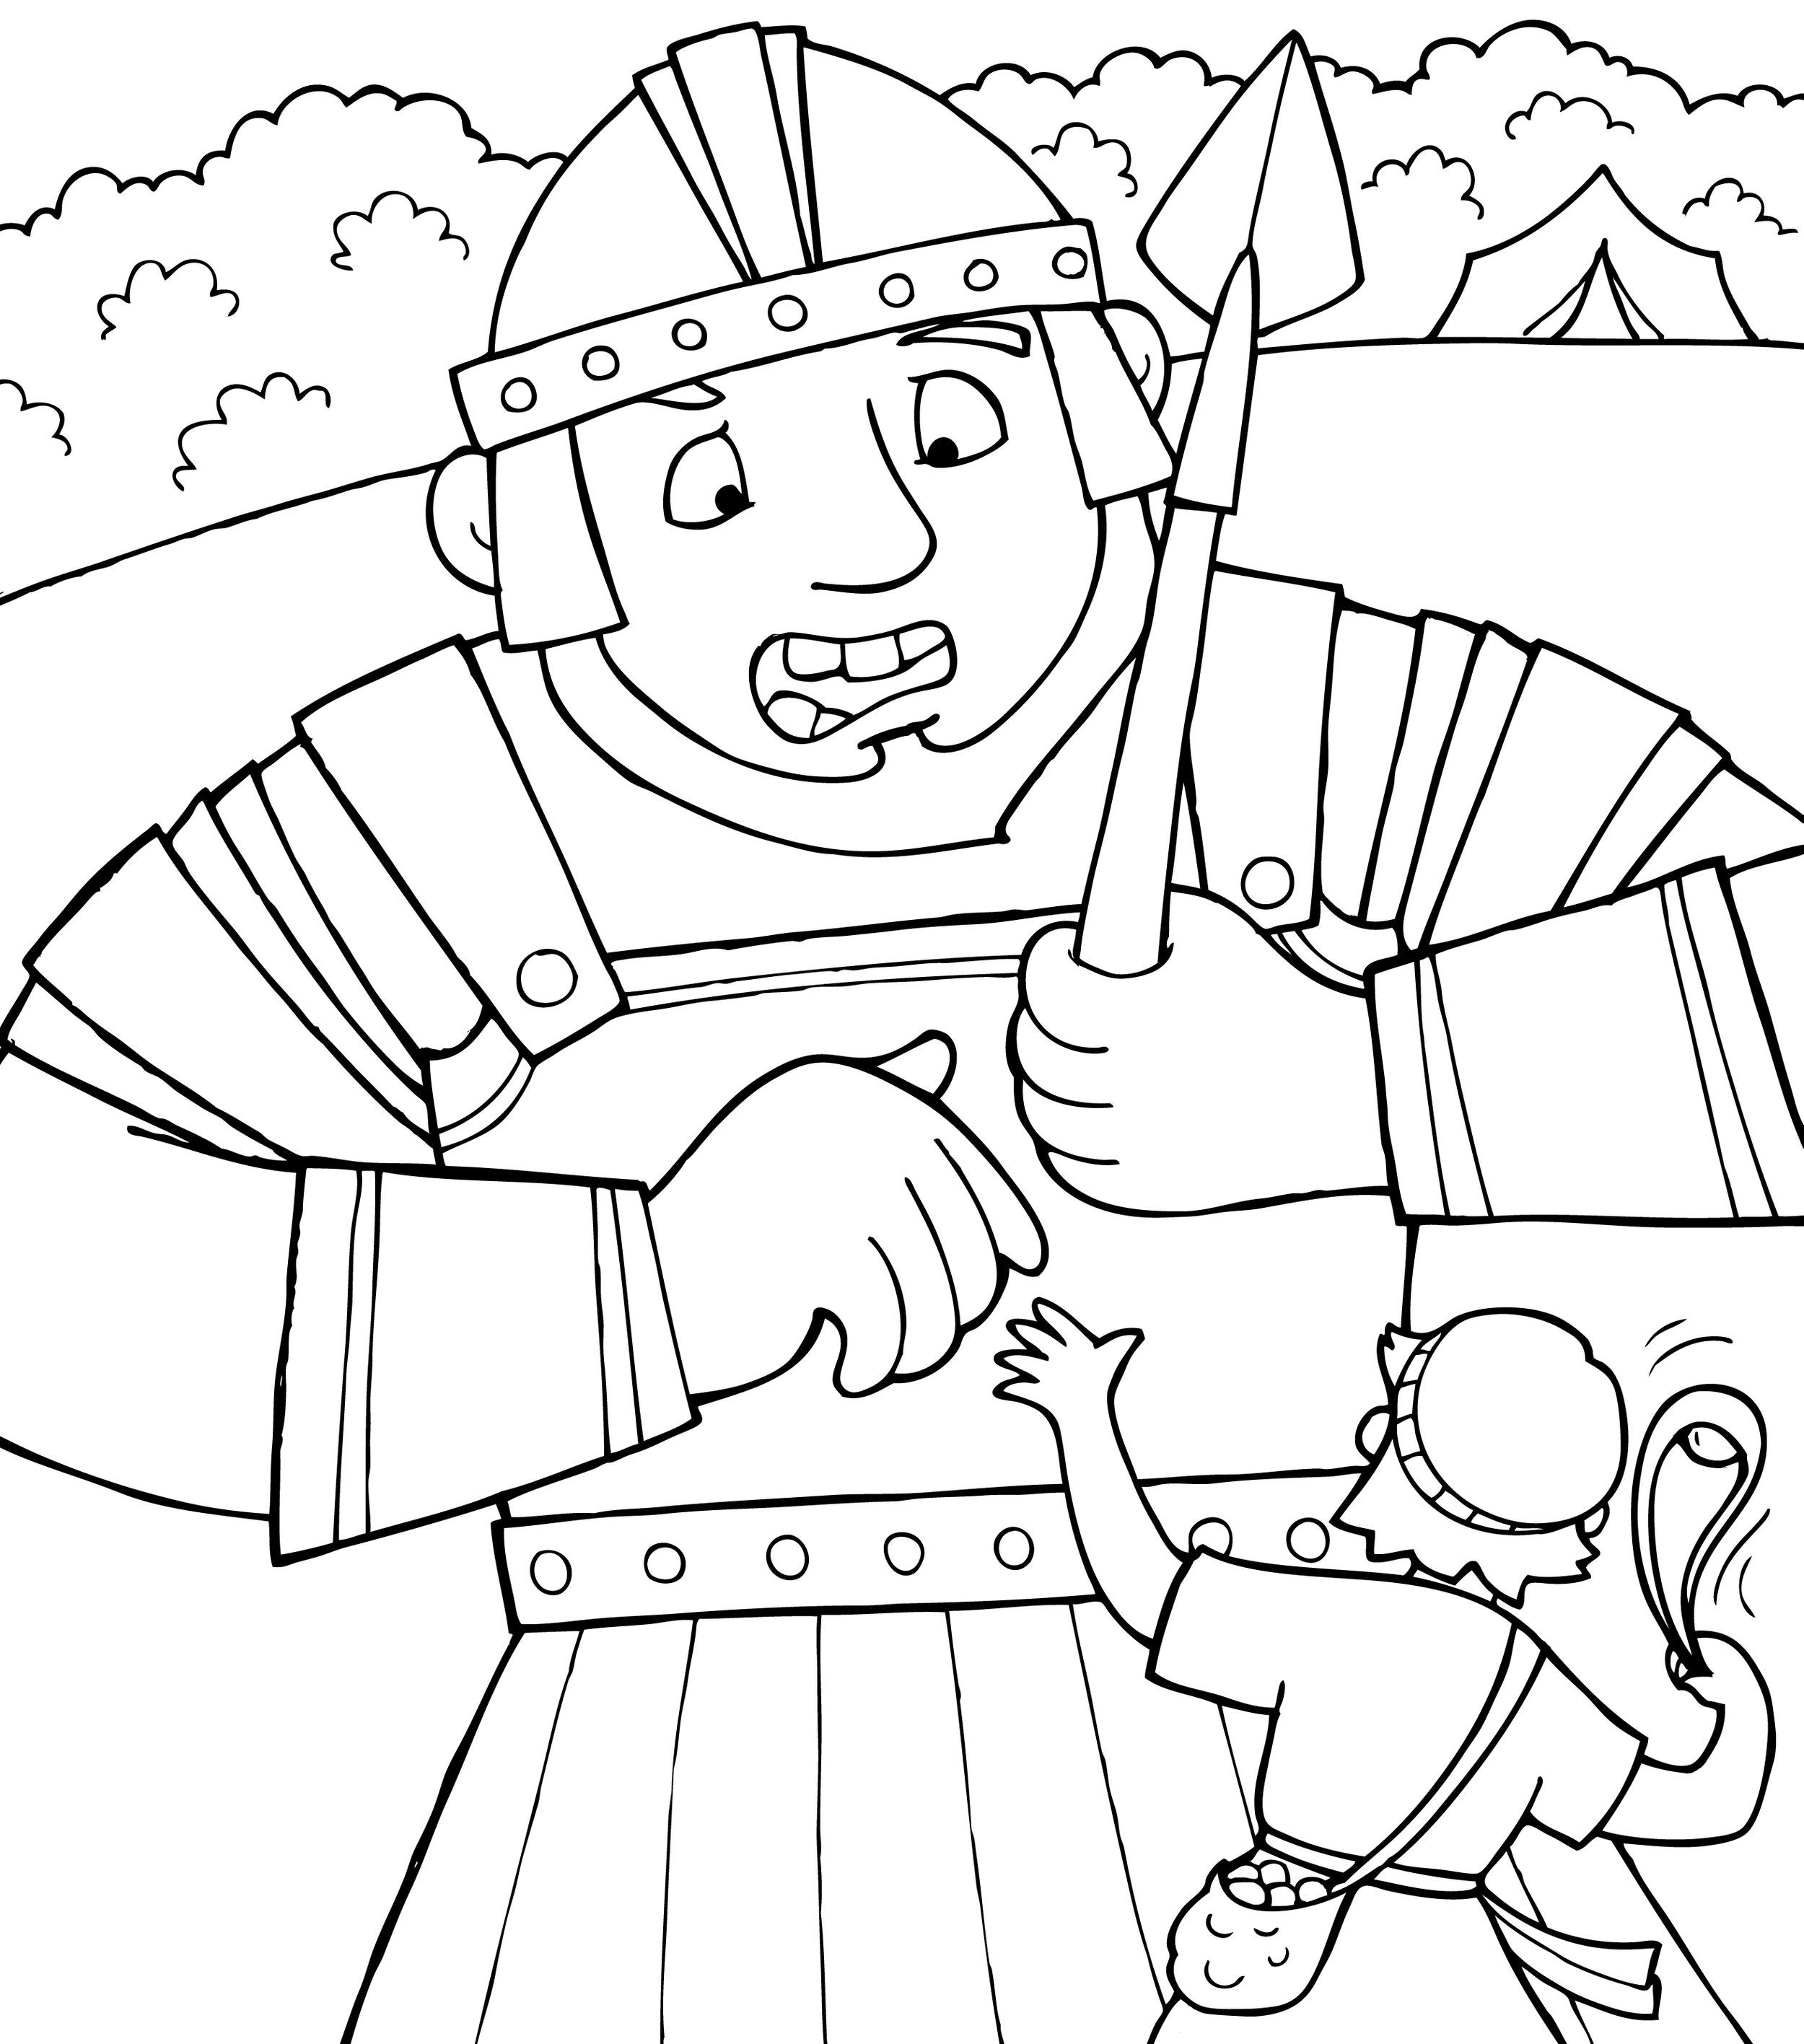 Old Testament Heroes Unit This Includes Four Weeks Of Lessons Four Coloring Pages And Four Activity Sheets About Heroes From Th Old Testament Hero Unit Hero